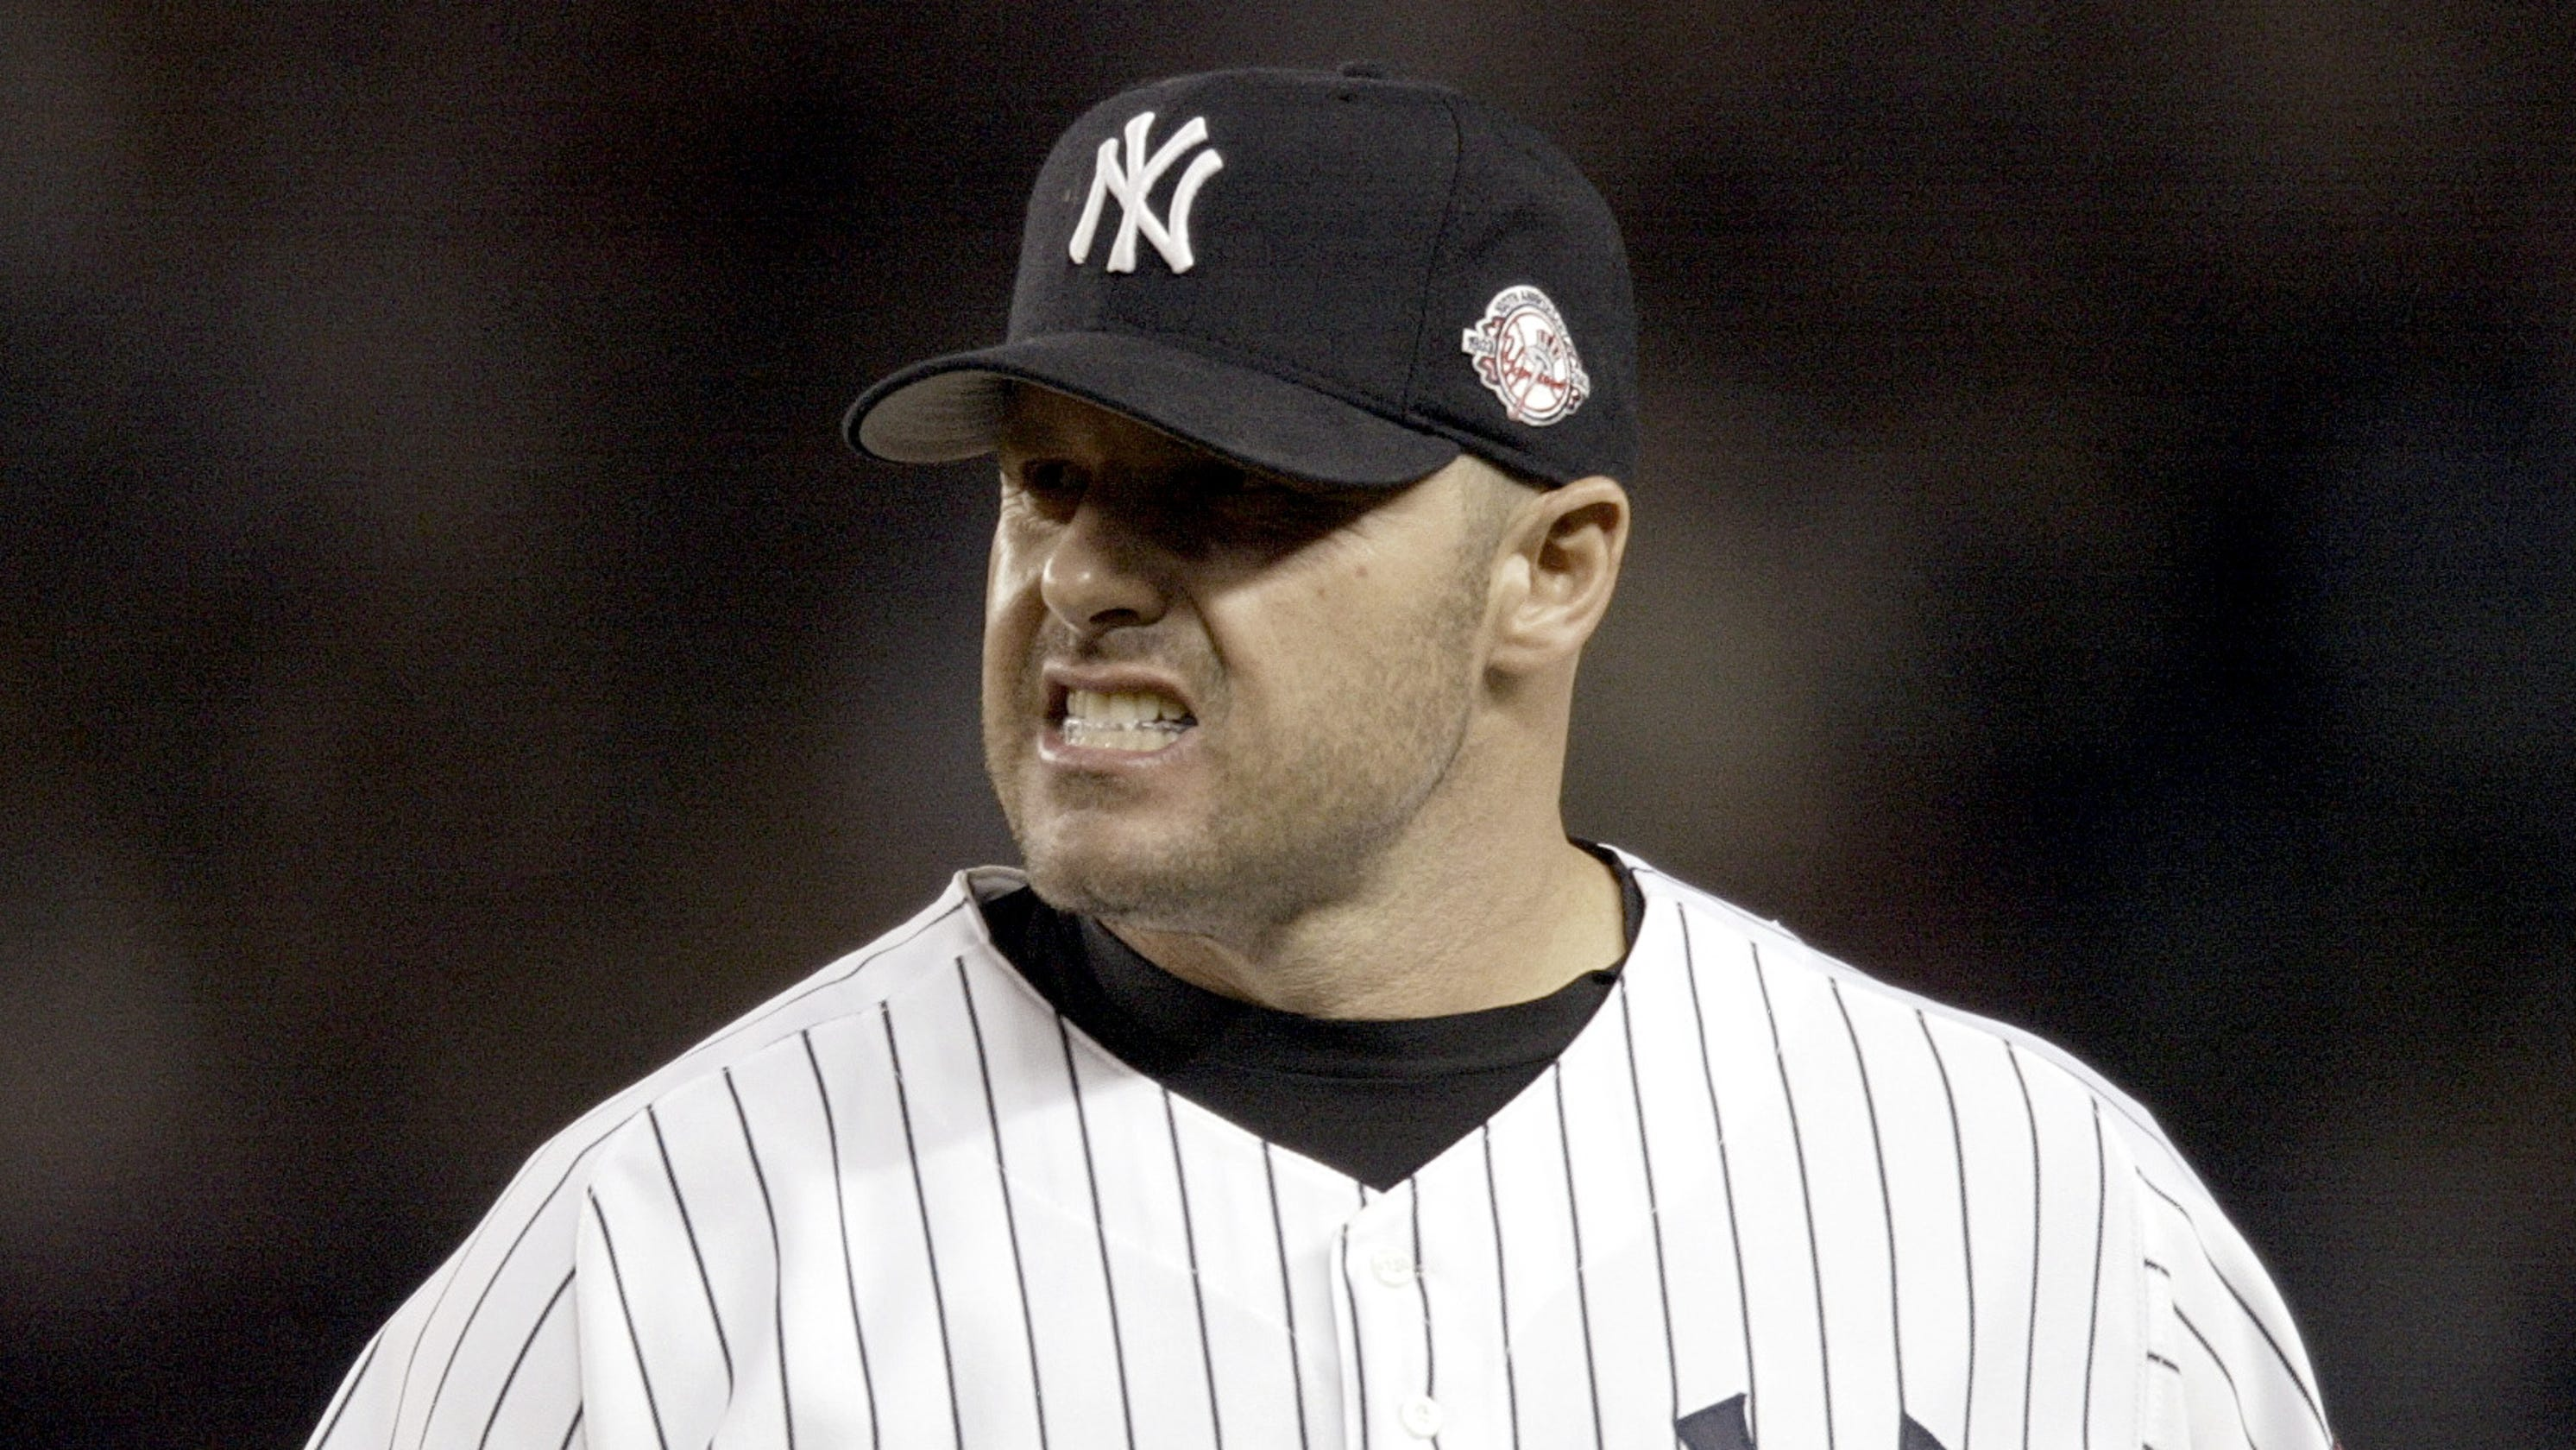 Hall of Fame: Roger Clemens, dominant, but likely snubbed again